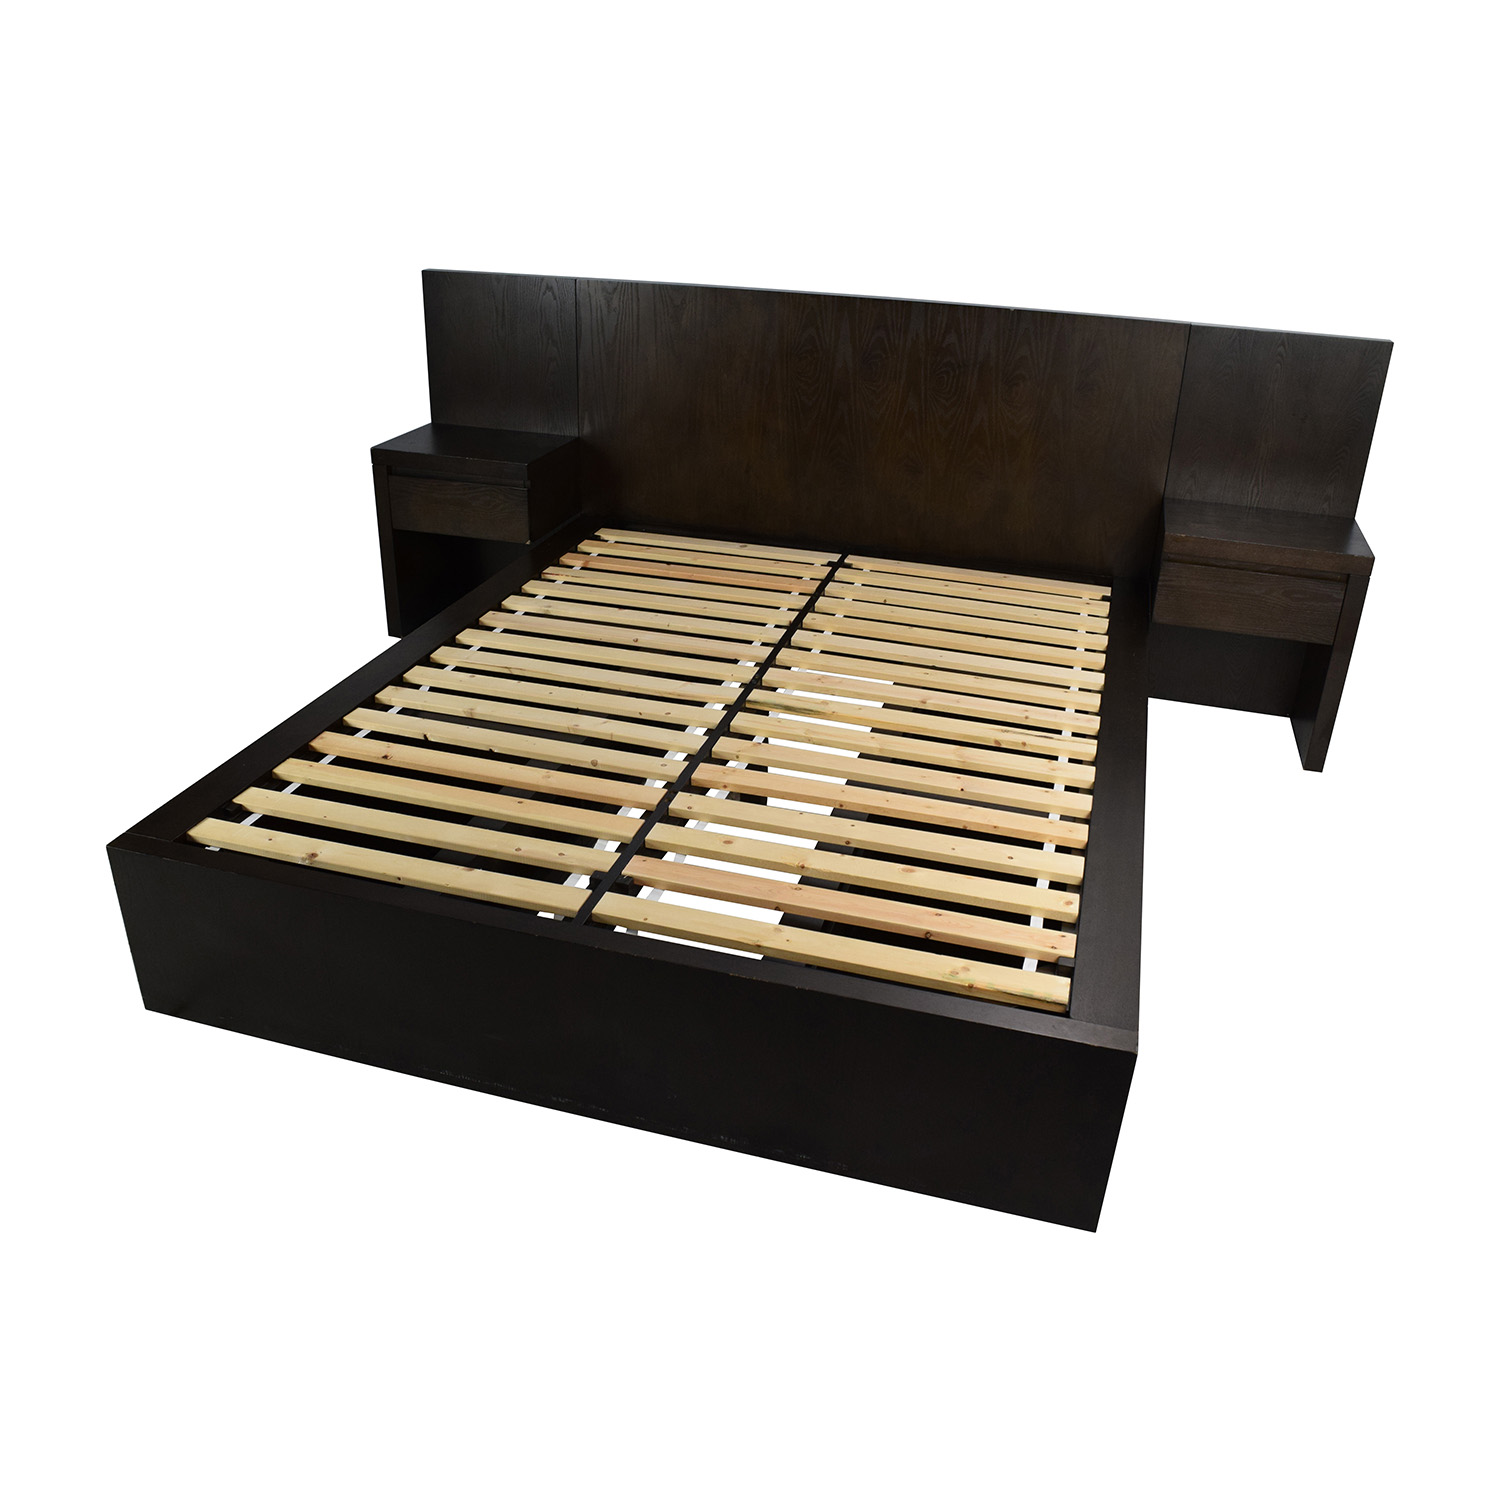 west elm west elm queen size storage platform bed frame price